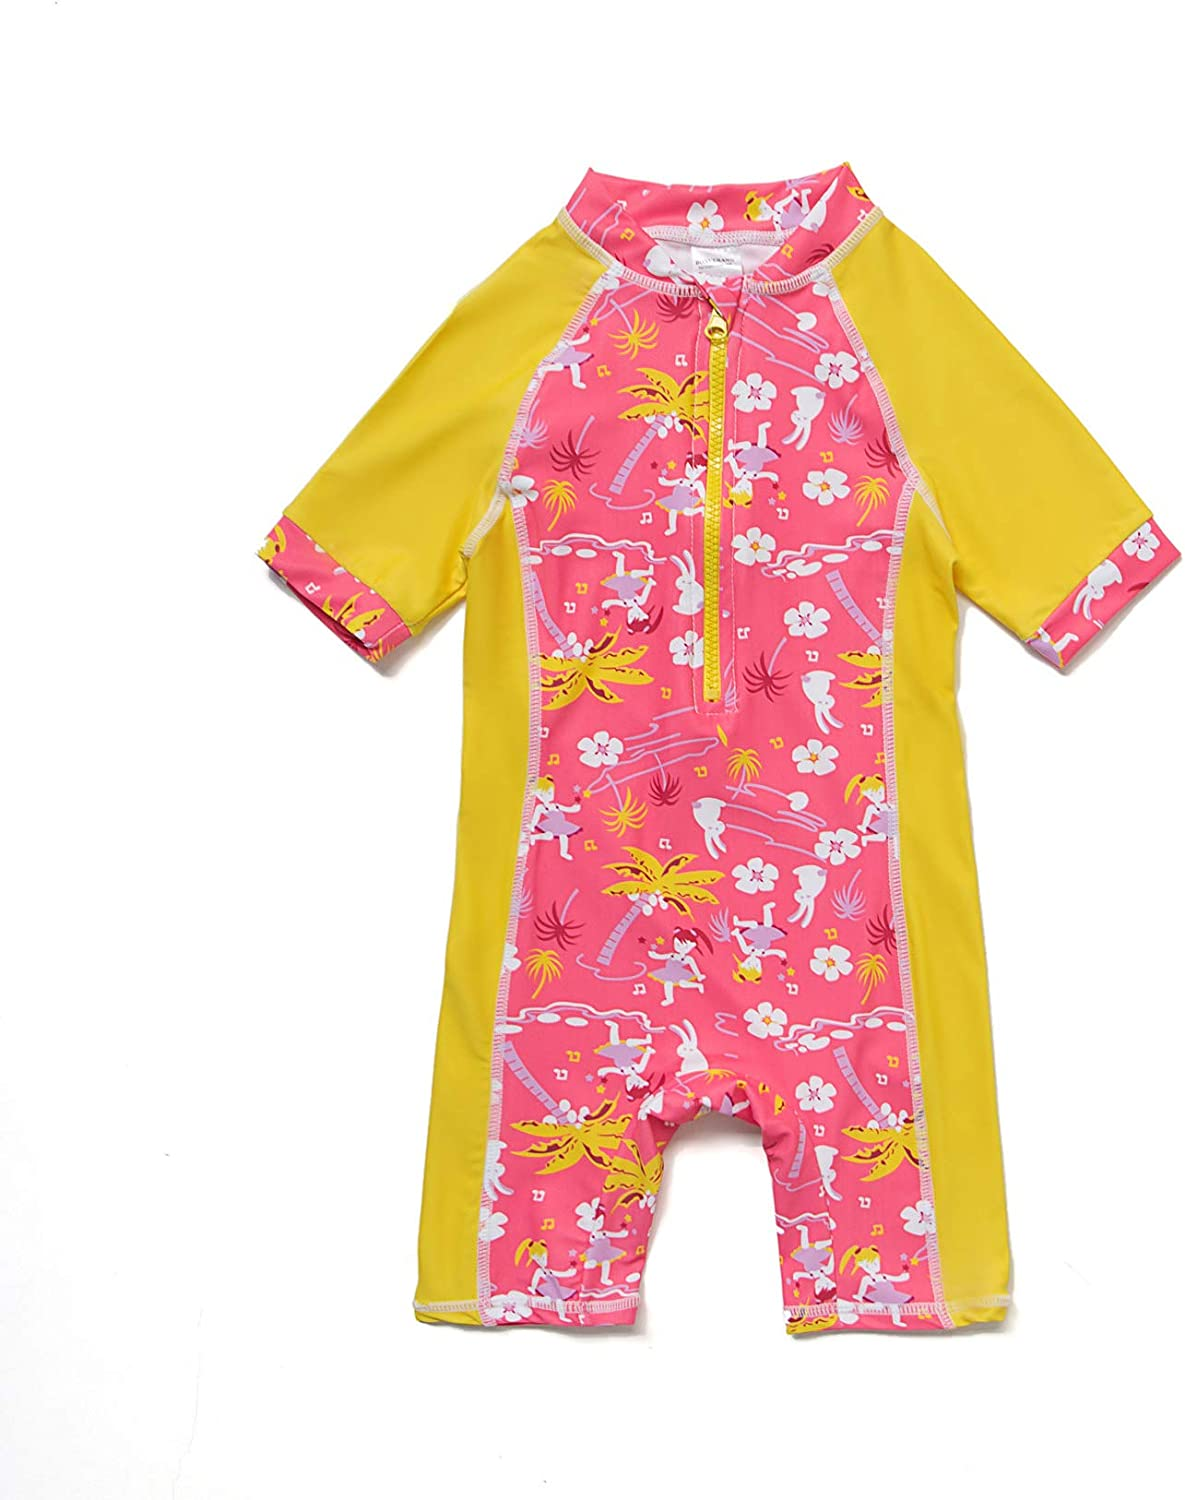 Baby Girls Sunsuit UPF 50+ Sun Protection One Pieces Short Sleeves Swimwear with Sun Hat(Yellow,24 36Months)